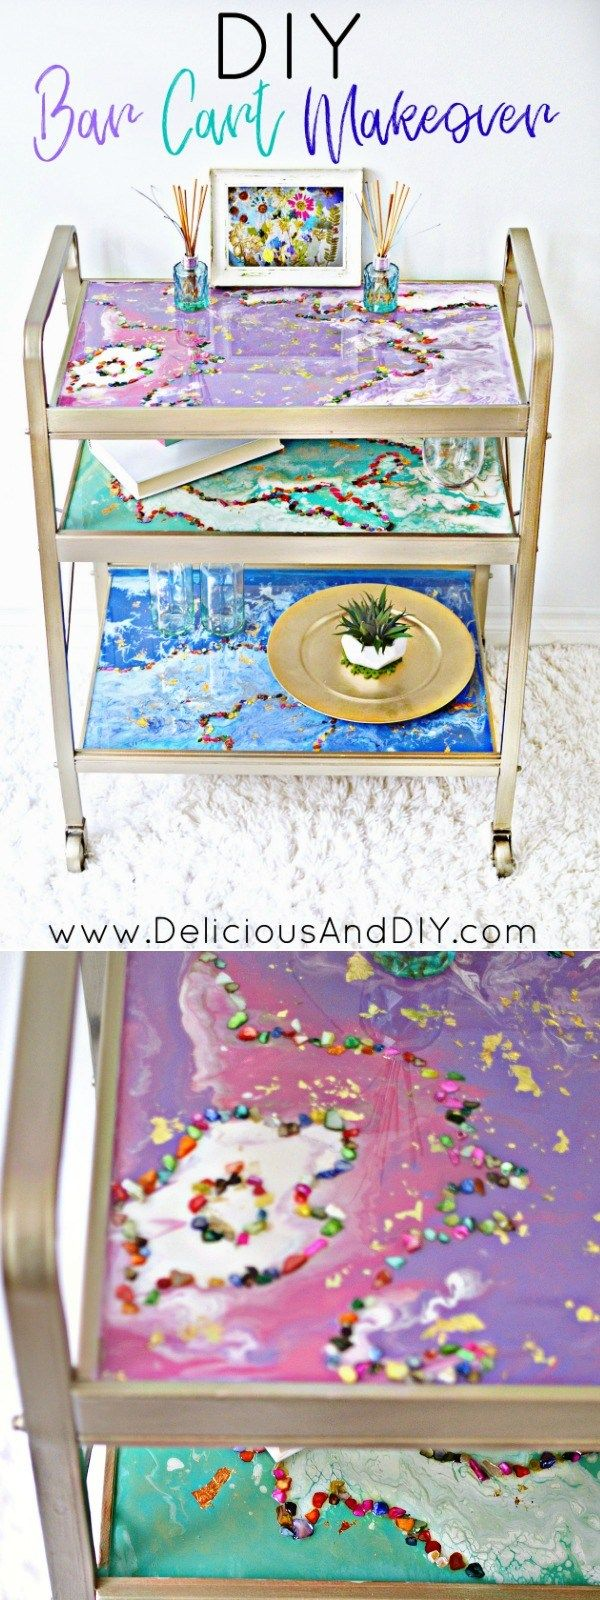 Give a stunning makeover to your old bar cart using drip pour technique, colored...